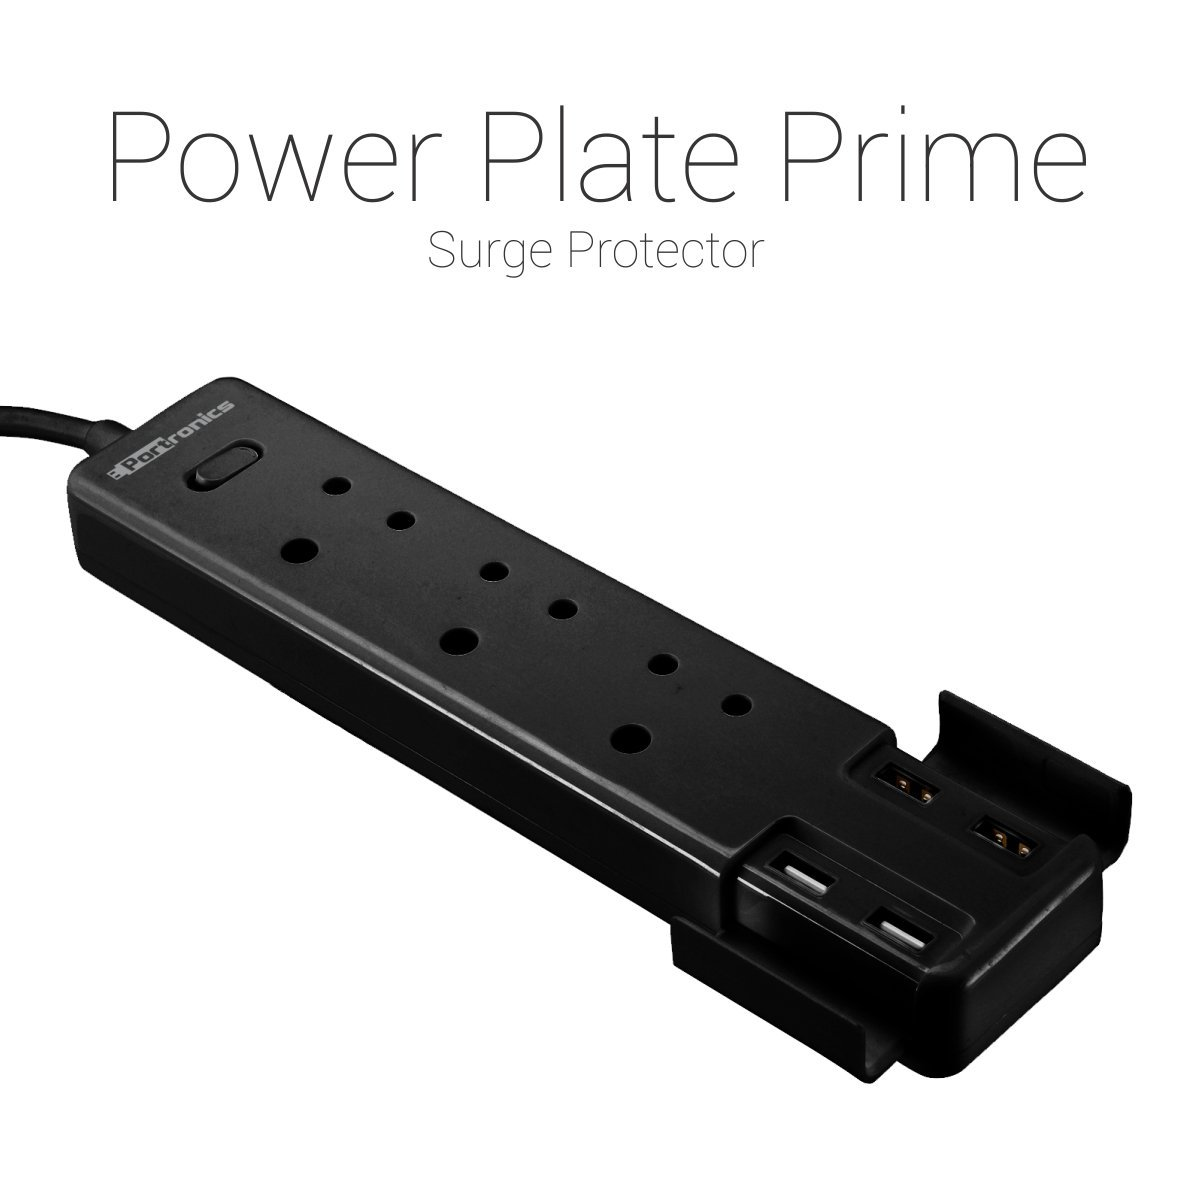 Portronics POR 670 Black  Power Plate Prime Three 5A electrical universal sockets and 4 USB ports Surge Protector